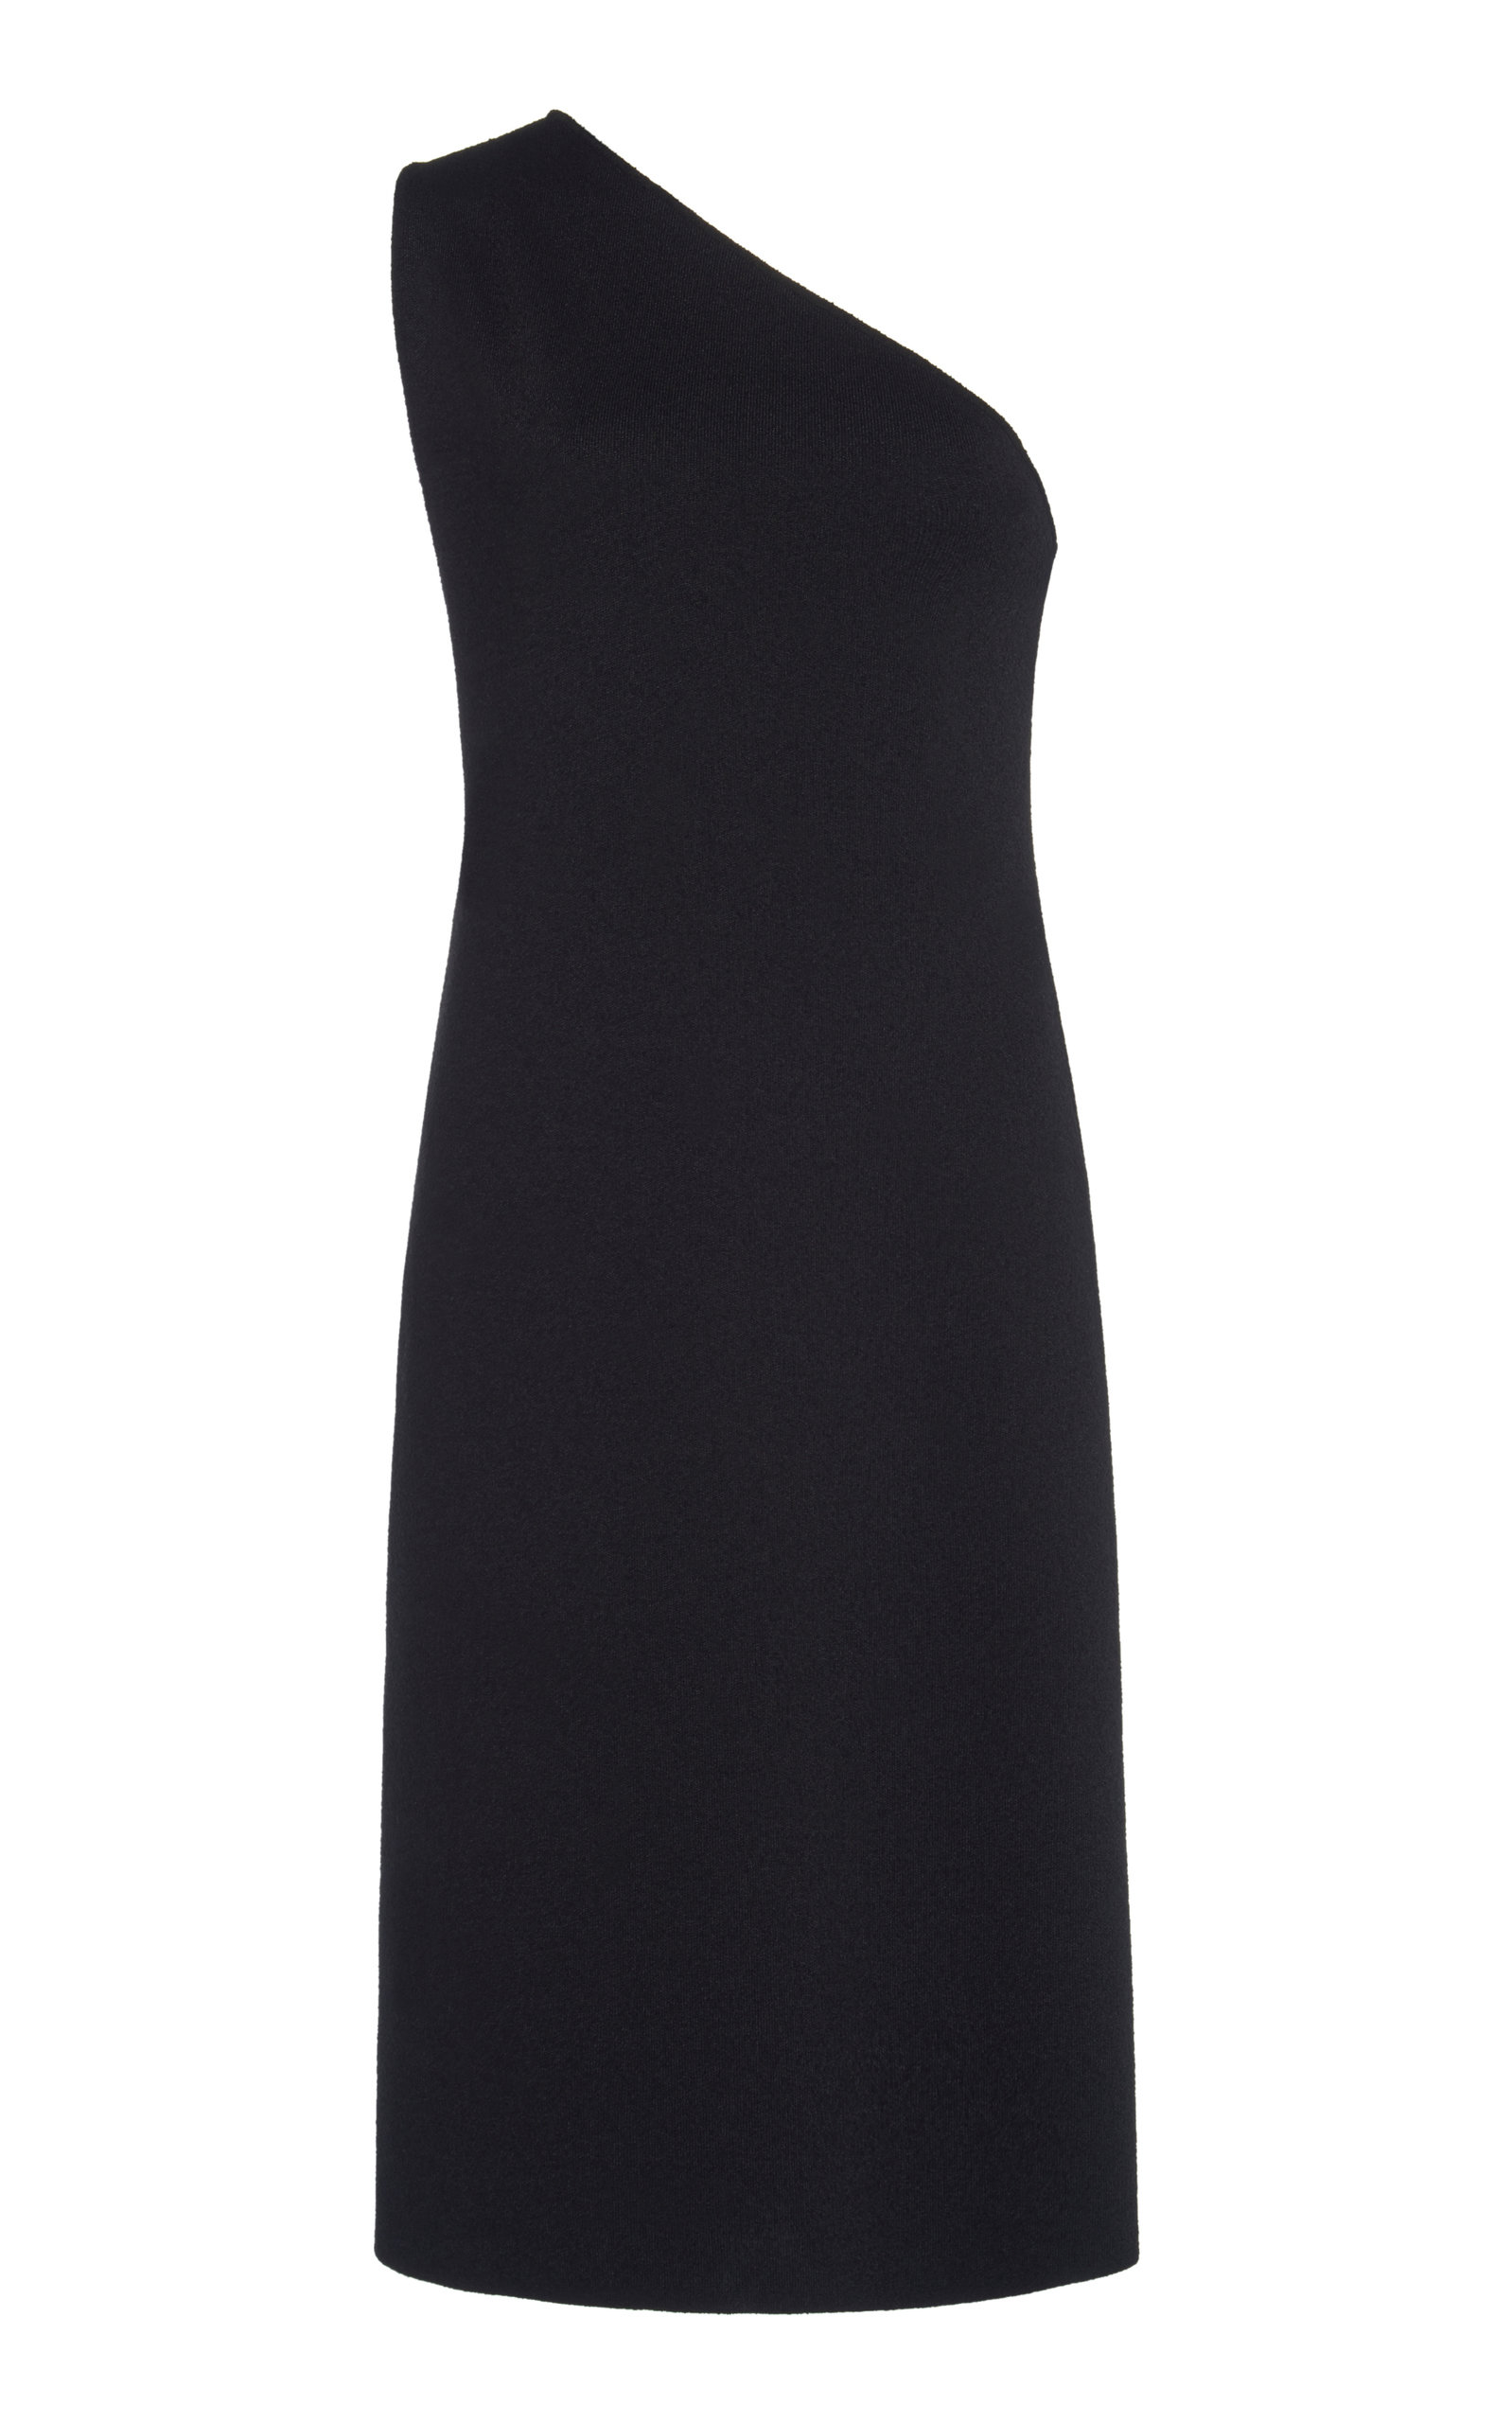 Buy Bottega Veneta One-Shoulder Cady Dress online, shop Bottega Veneta at the best price